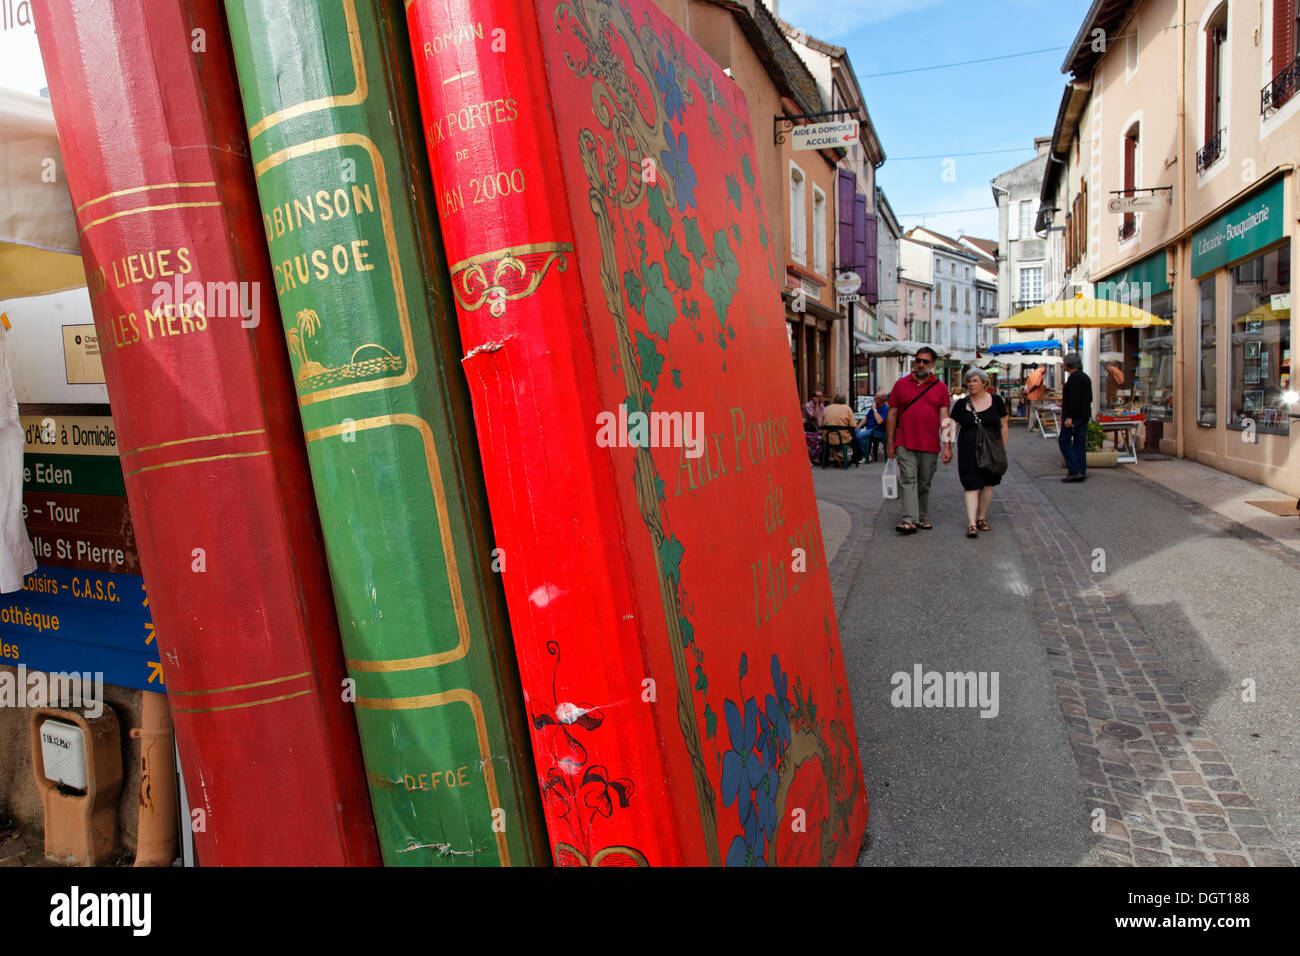 Book village of Cuisery with 15 antique bookstores, Tournus, Burgundy region, department of Saône-et-Loire, France, Europe - Stock Image